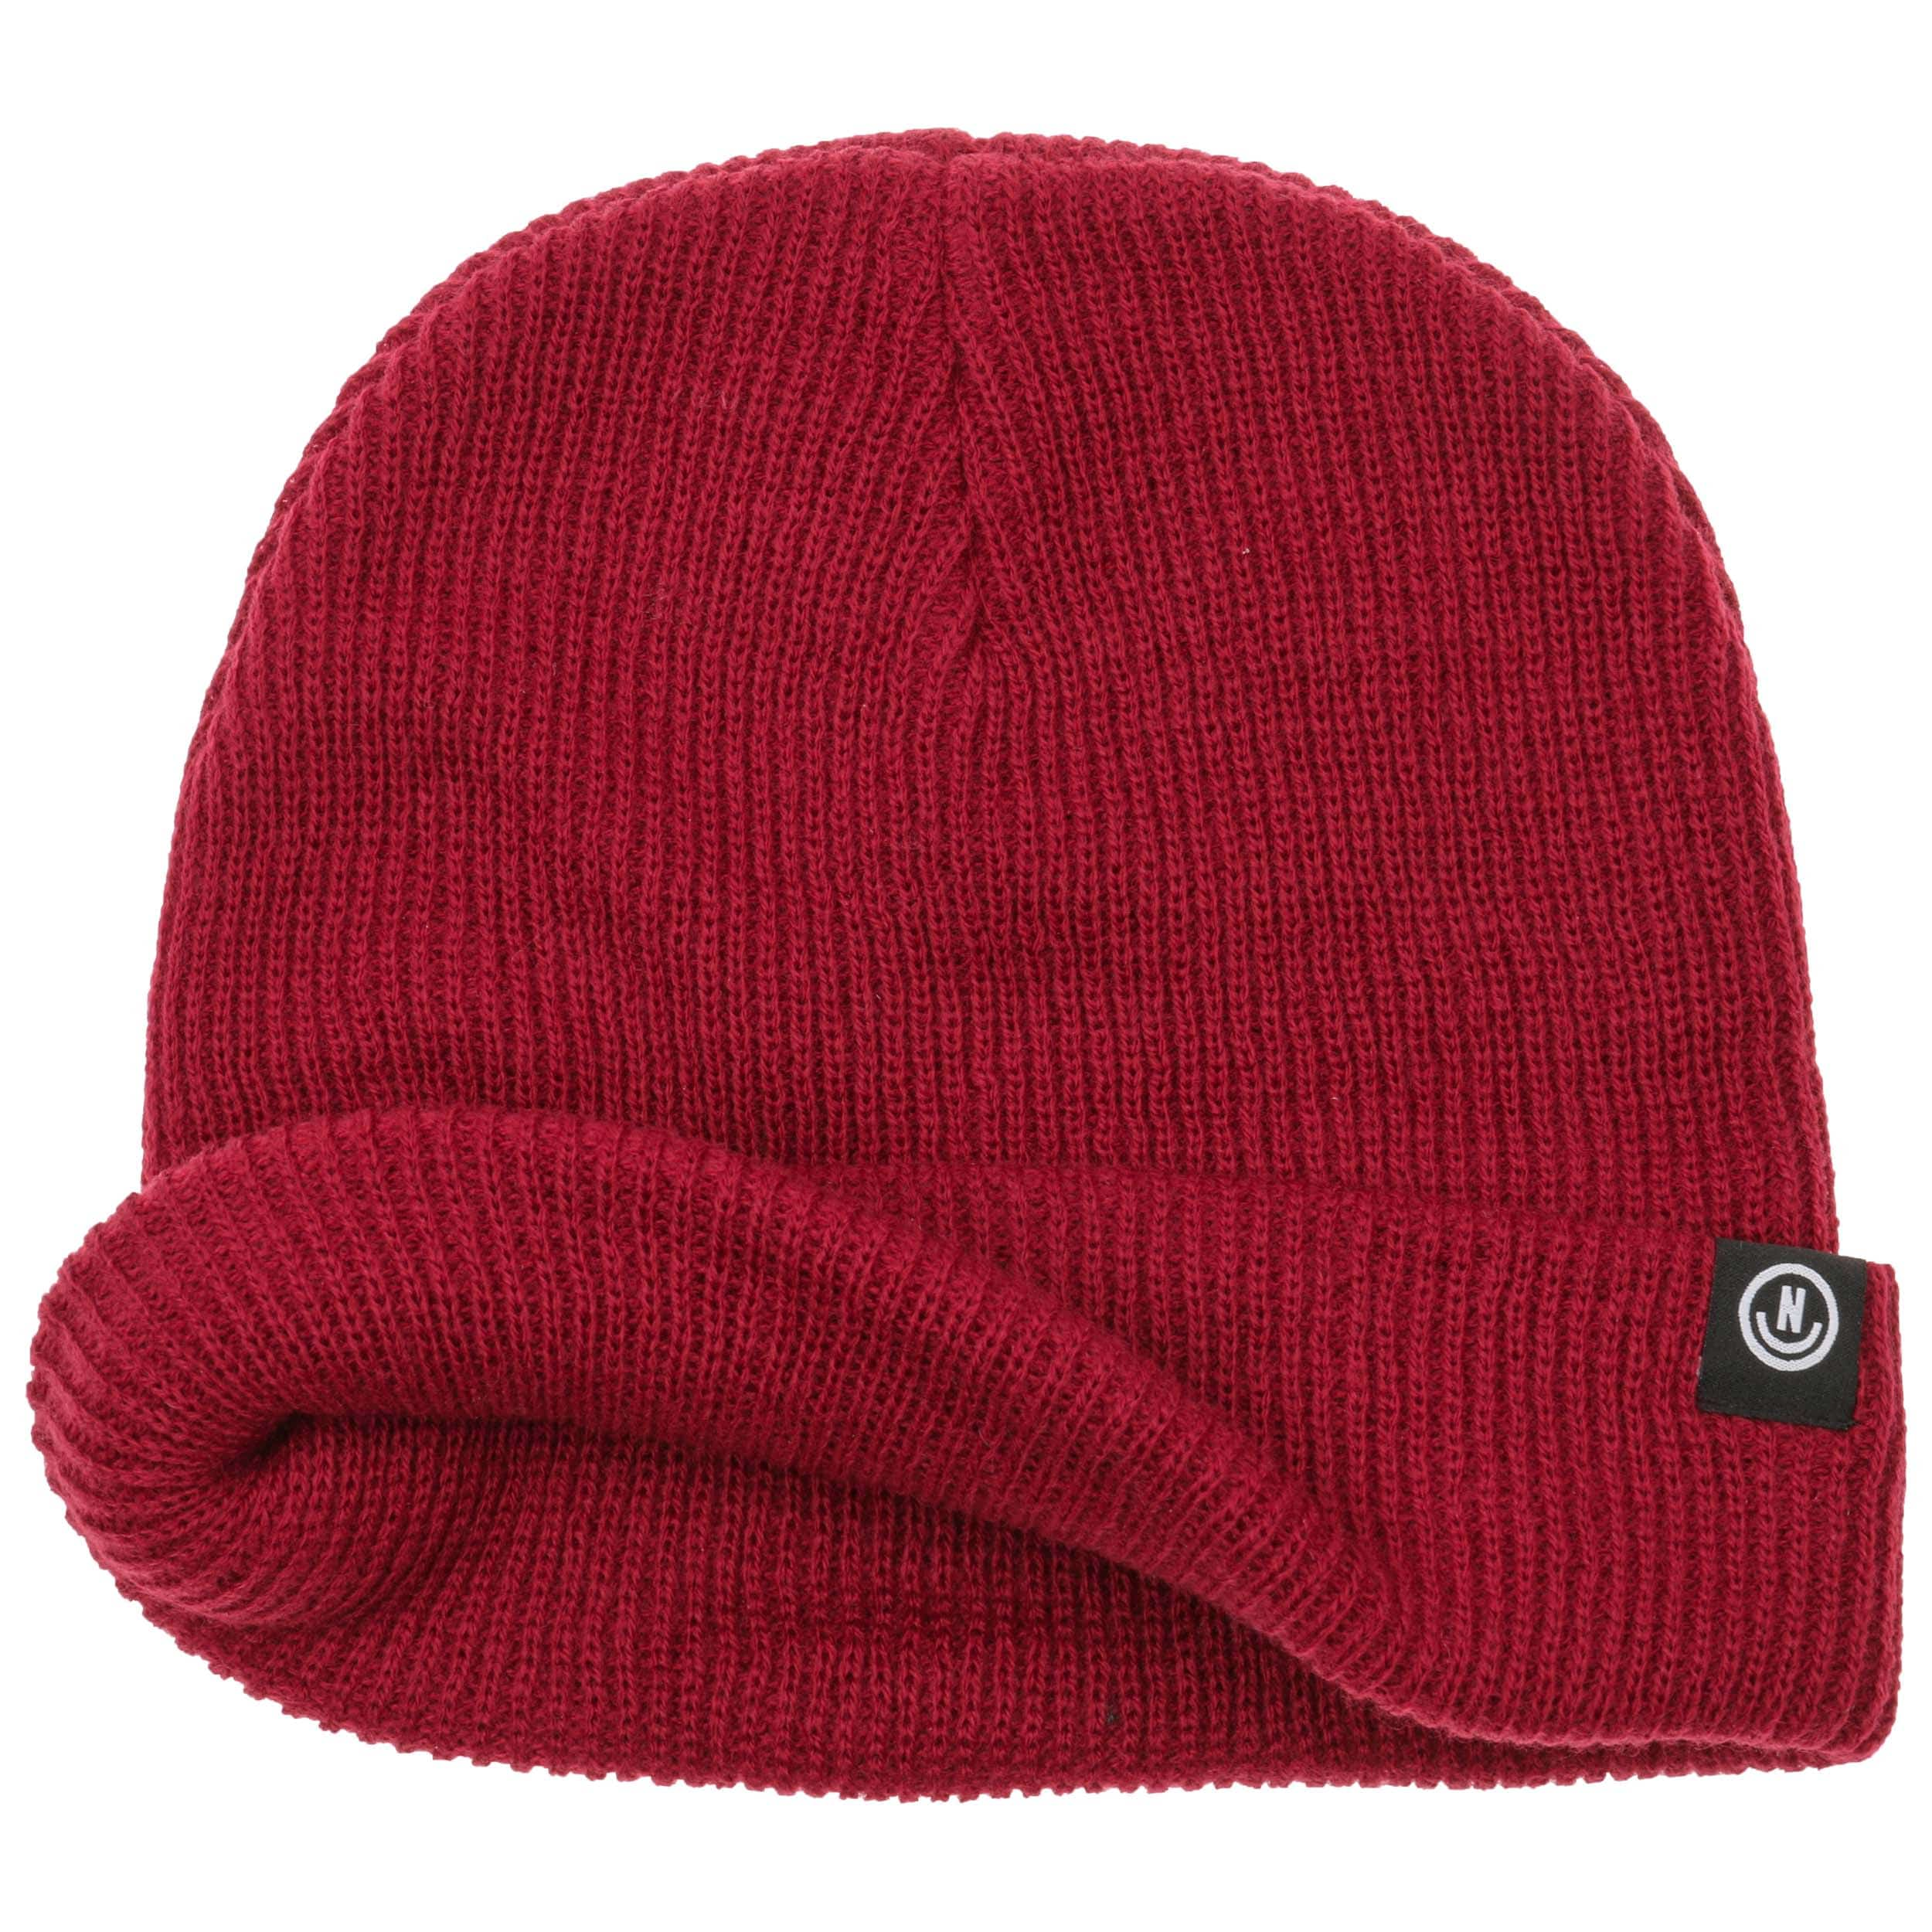 e9d0190b3e1 Serge Beanie by neff - dark red 1 ...